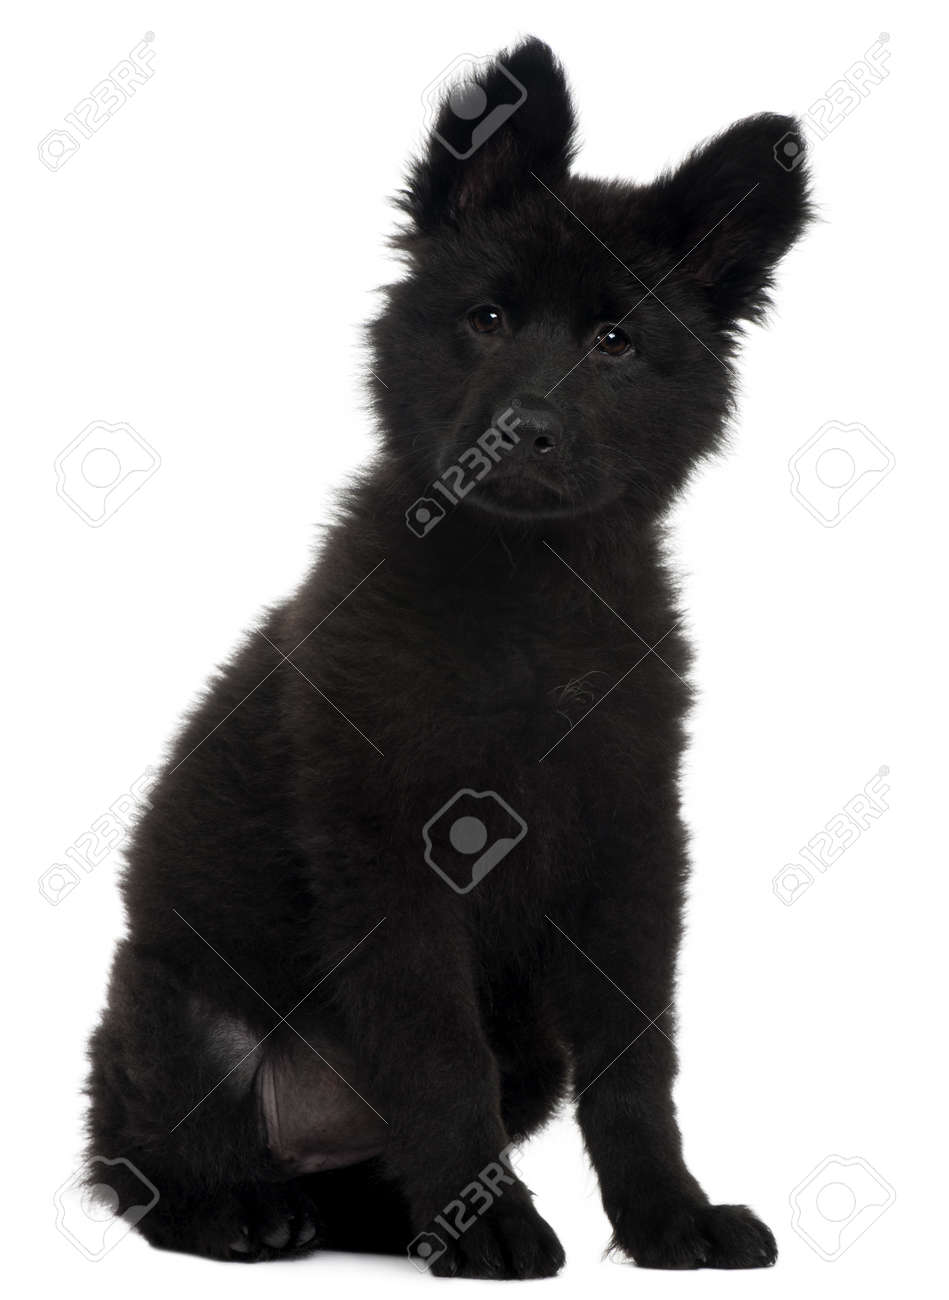 German Shepherd Dog puppy, 10 weeks old, sitting in front of white background Stock Photo - 8029656